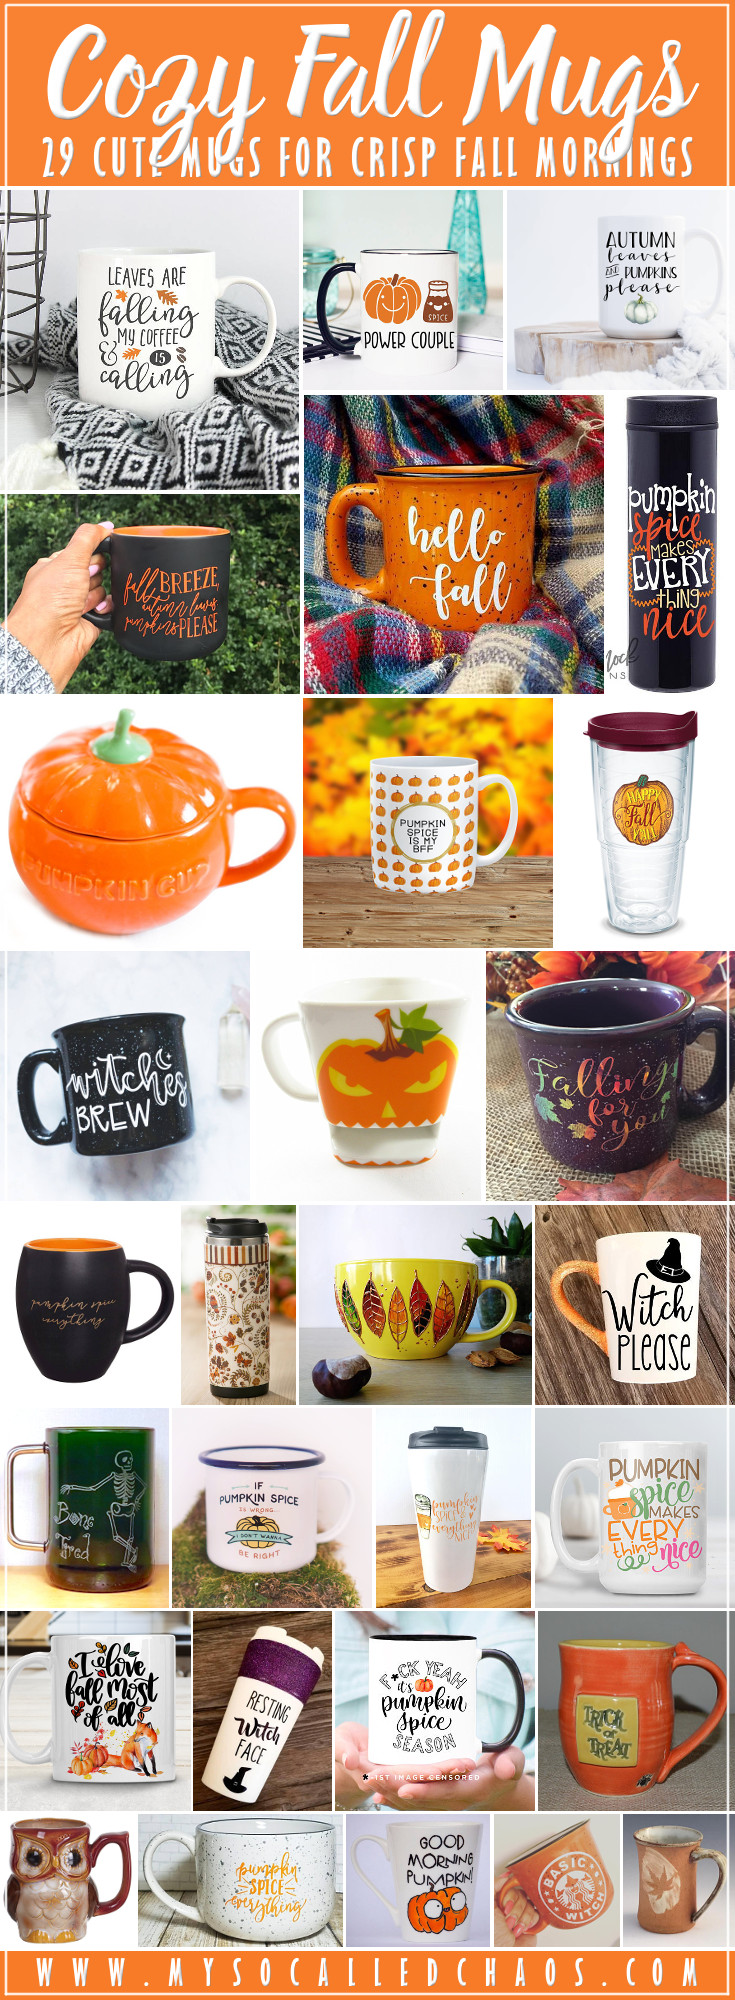 29 Cozy Fall Mugs You'll Love for Crisp Mornings